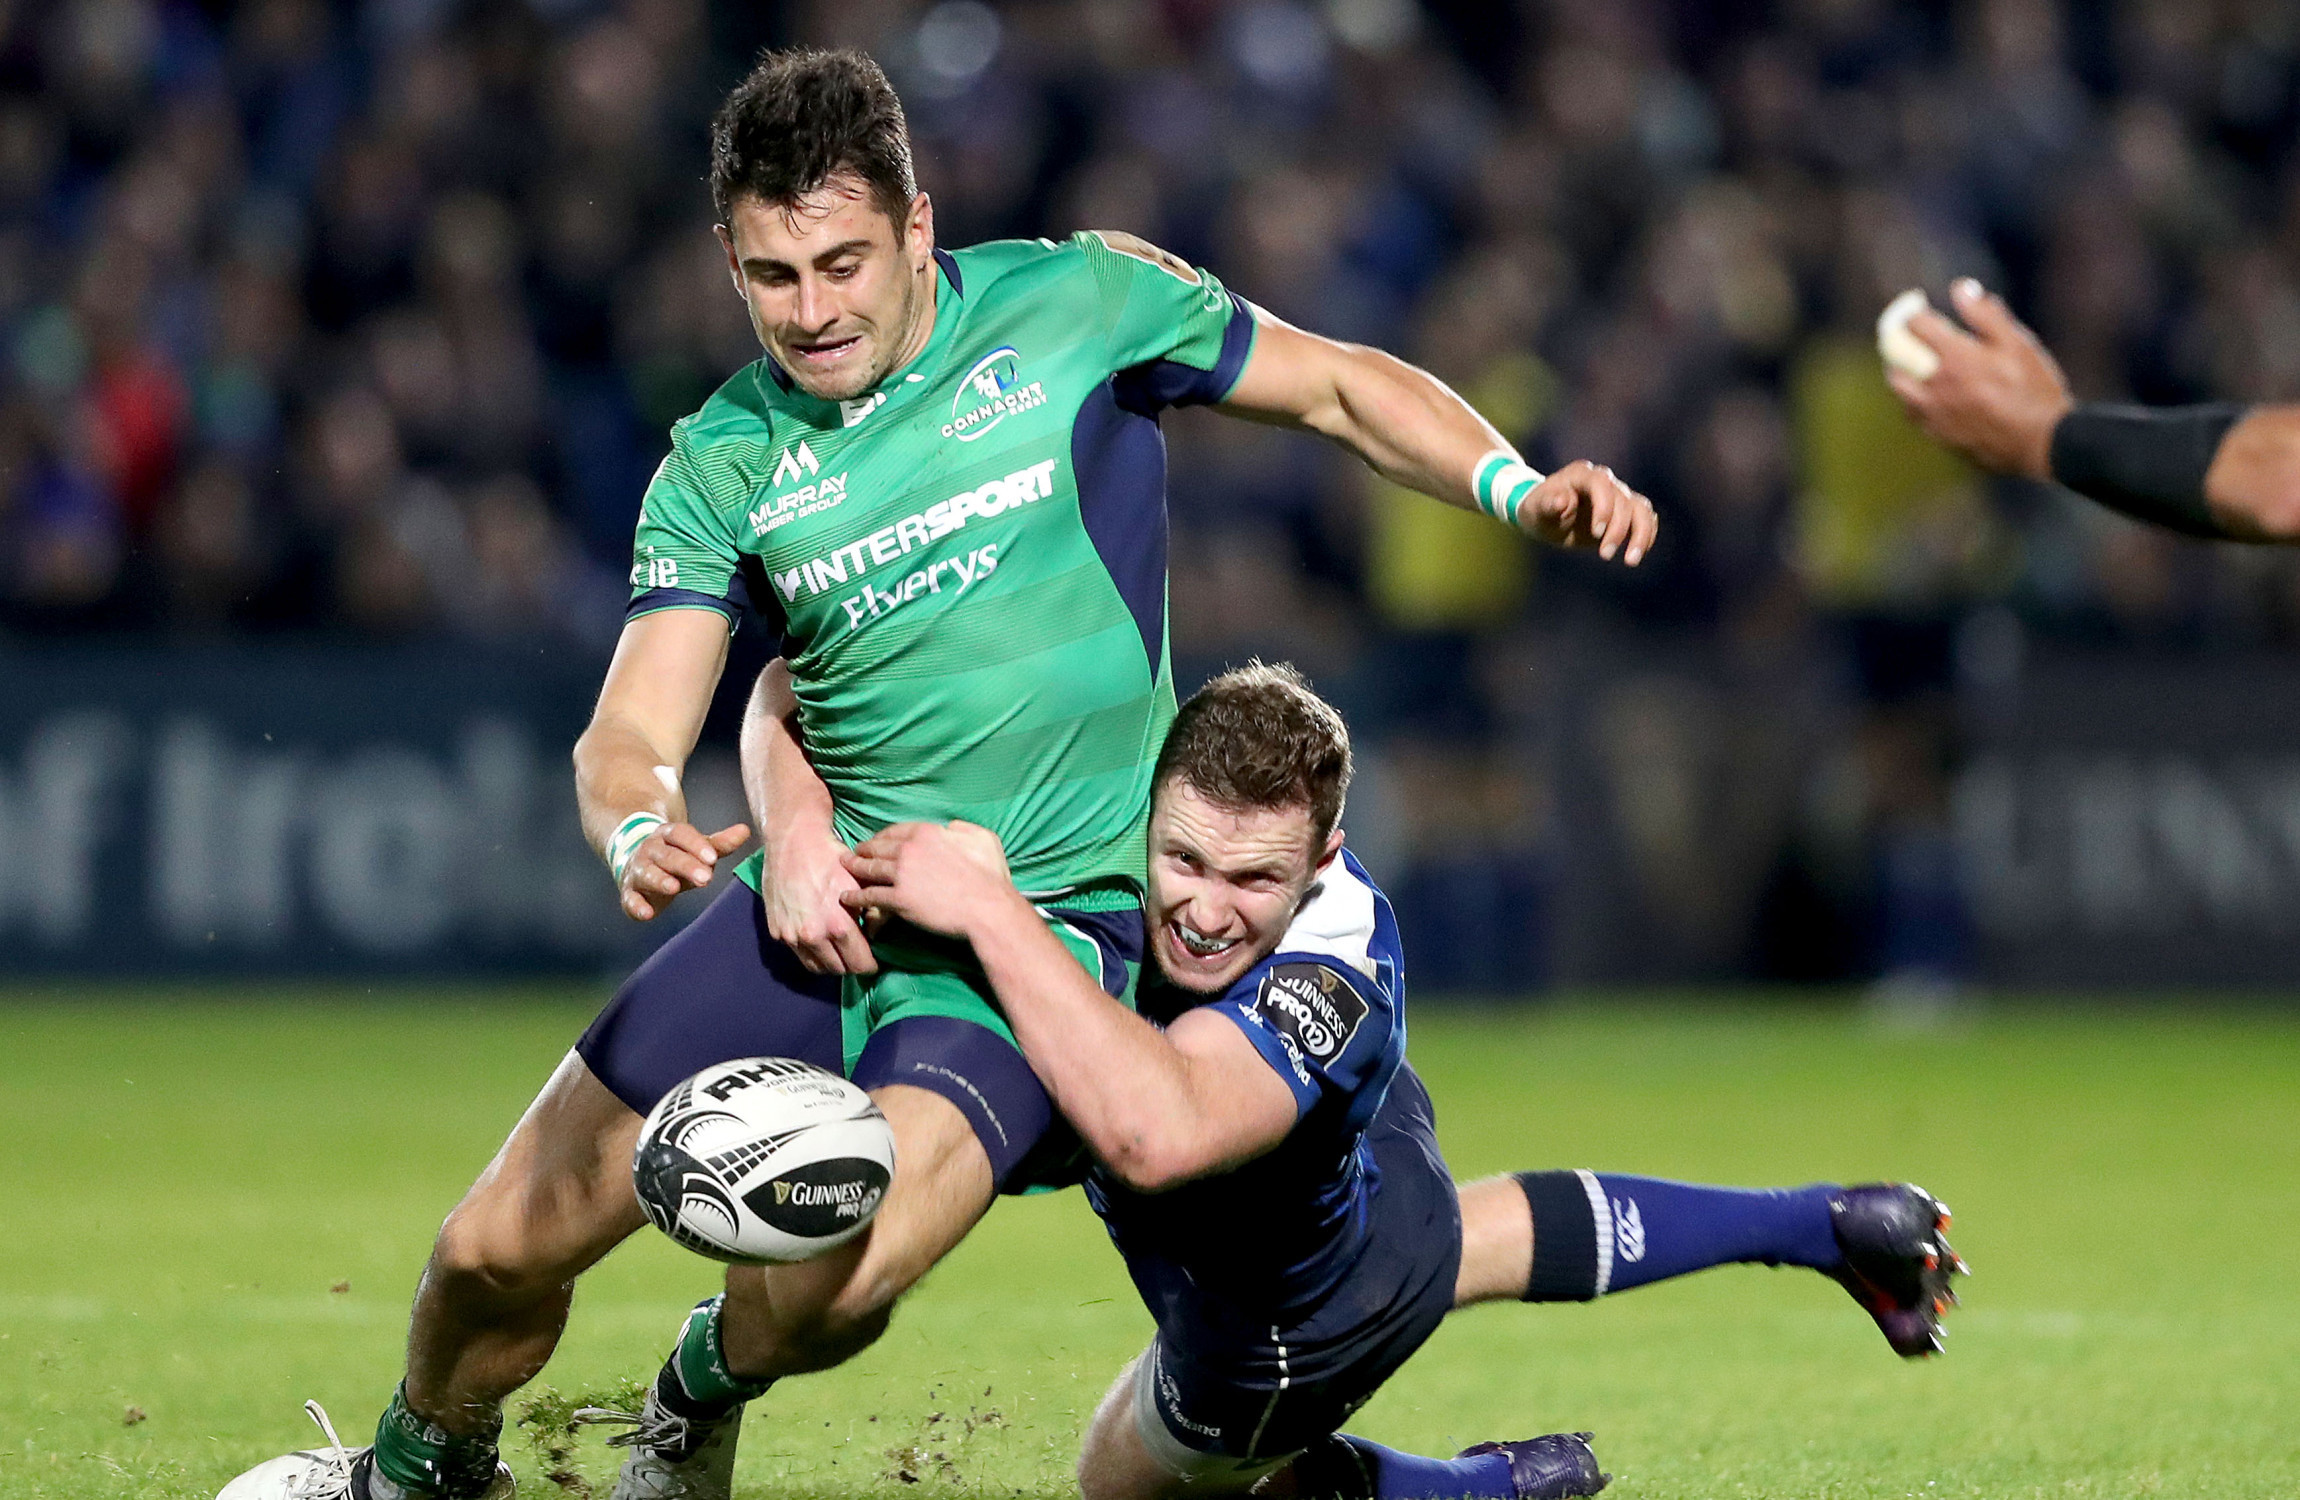 Watch Munster's Johann van Graan reaction to the loss against Ulster